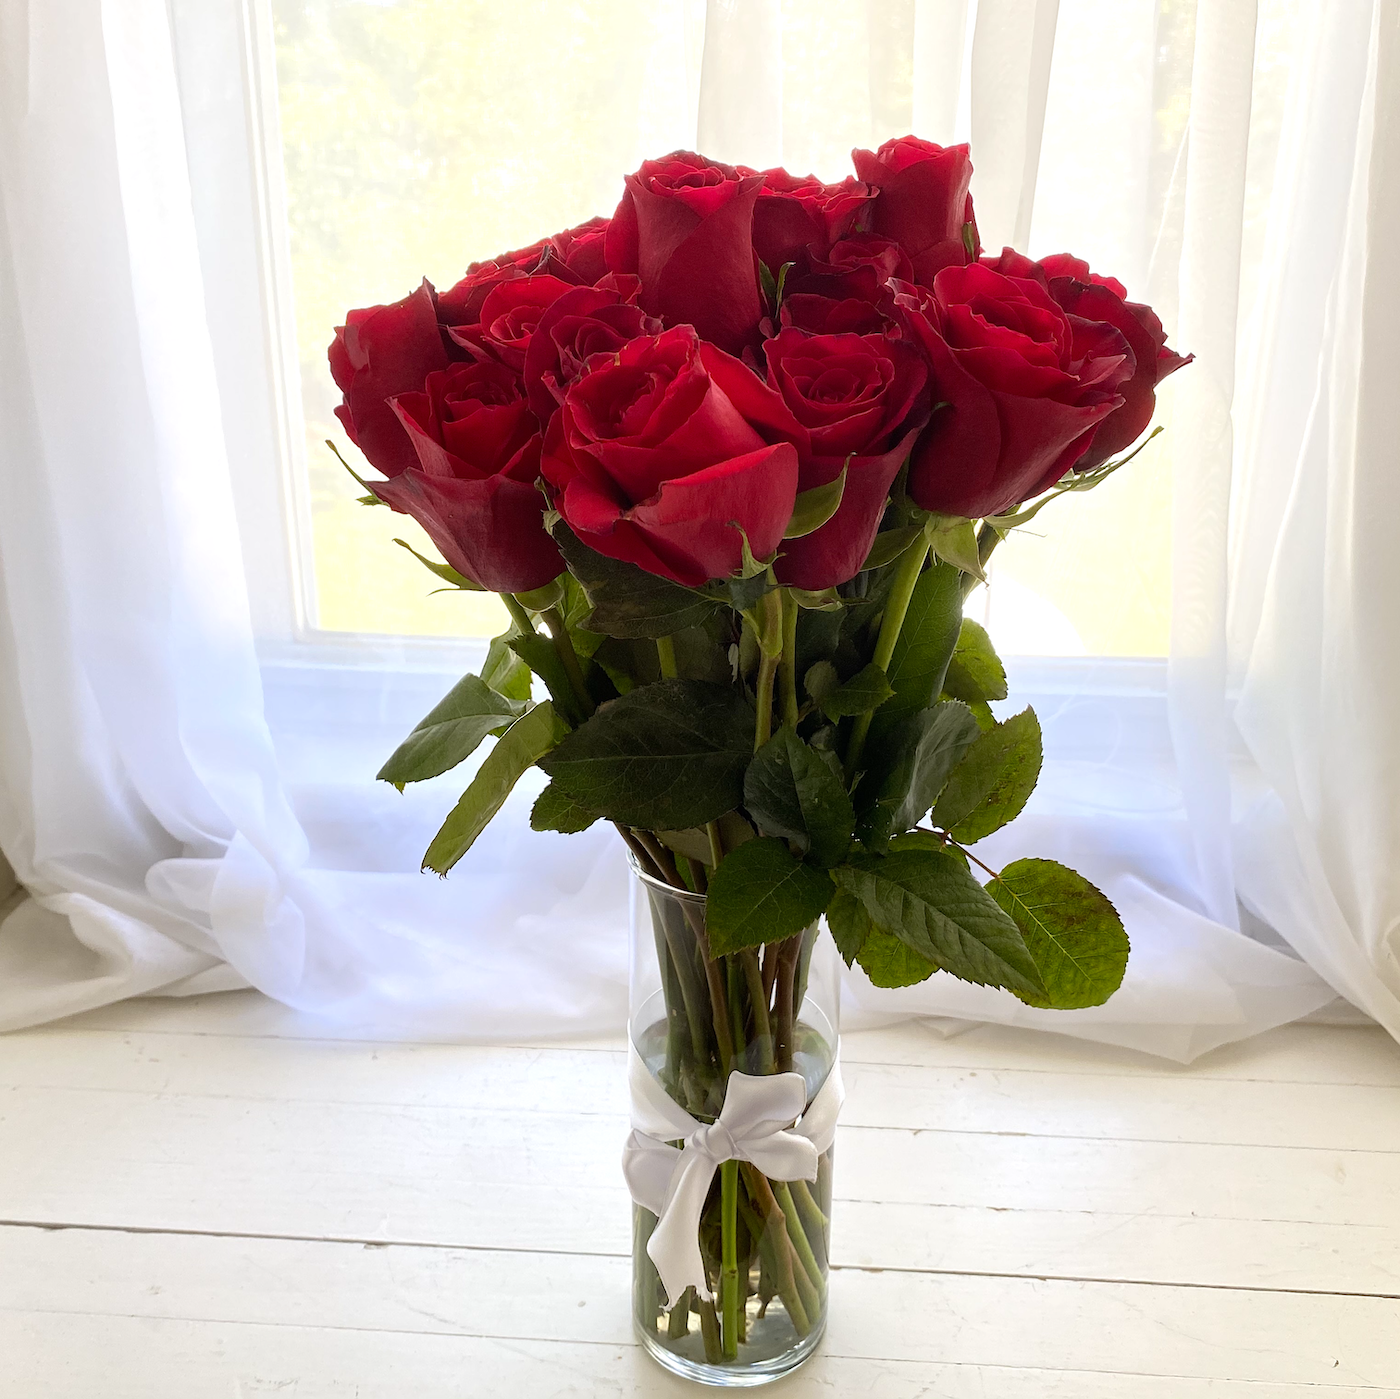 A dozen red roses to show your love while on a romantic getaway in Virginia.